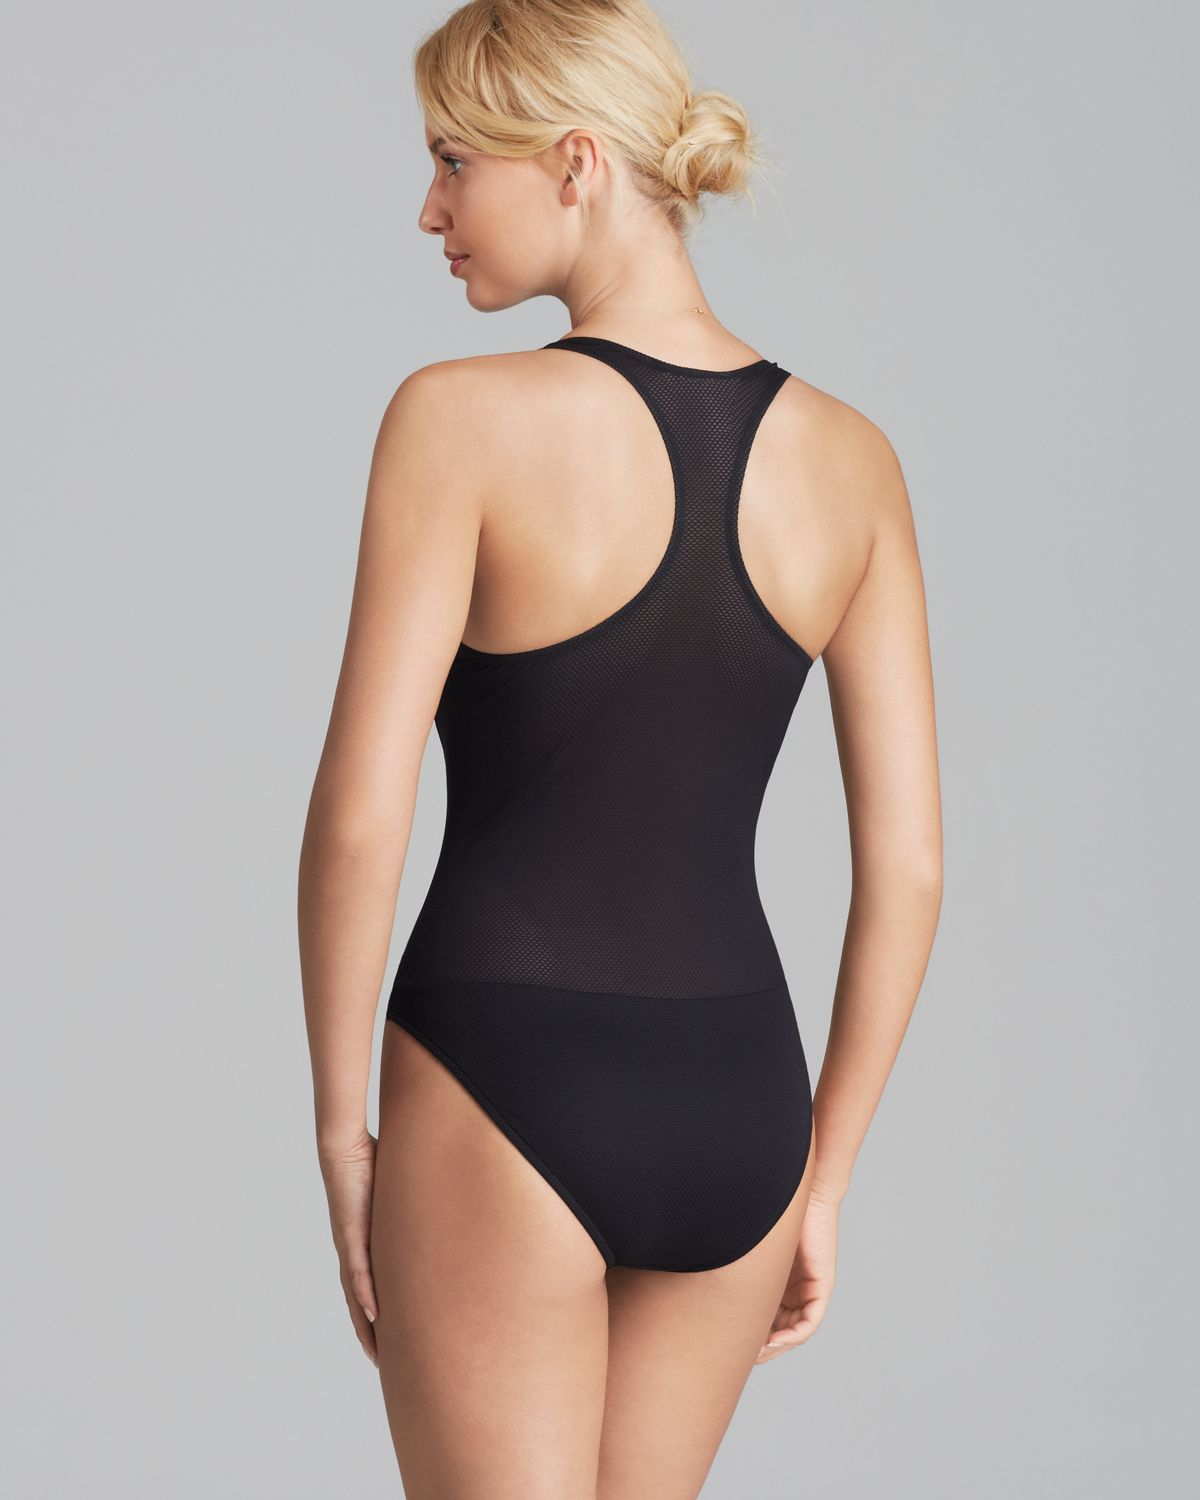 99b8614842 MILLY Mesh Martinique One Piece Swimsuit in Black - Lyst